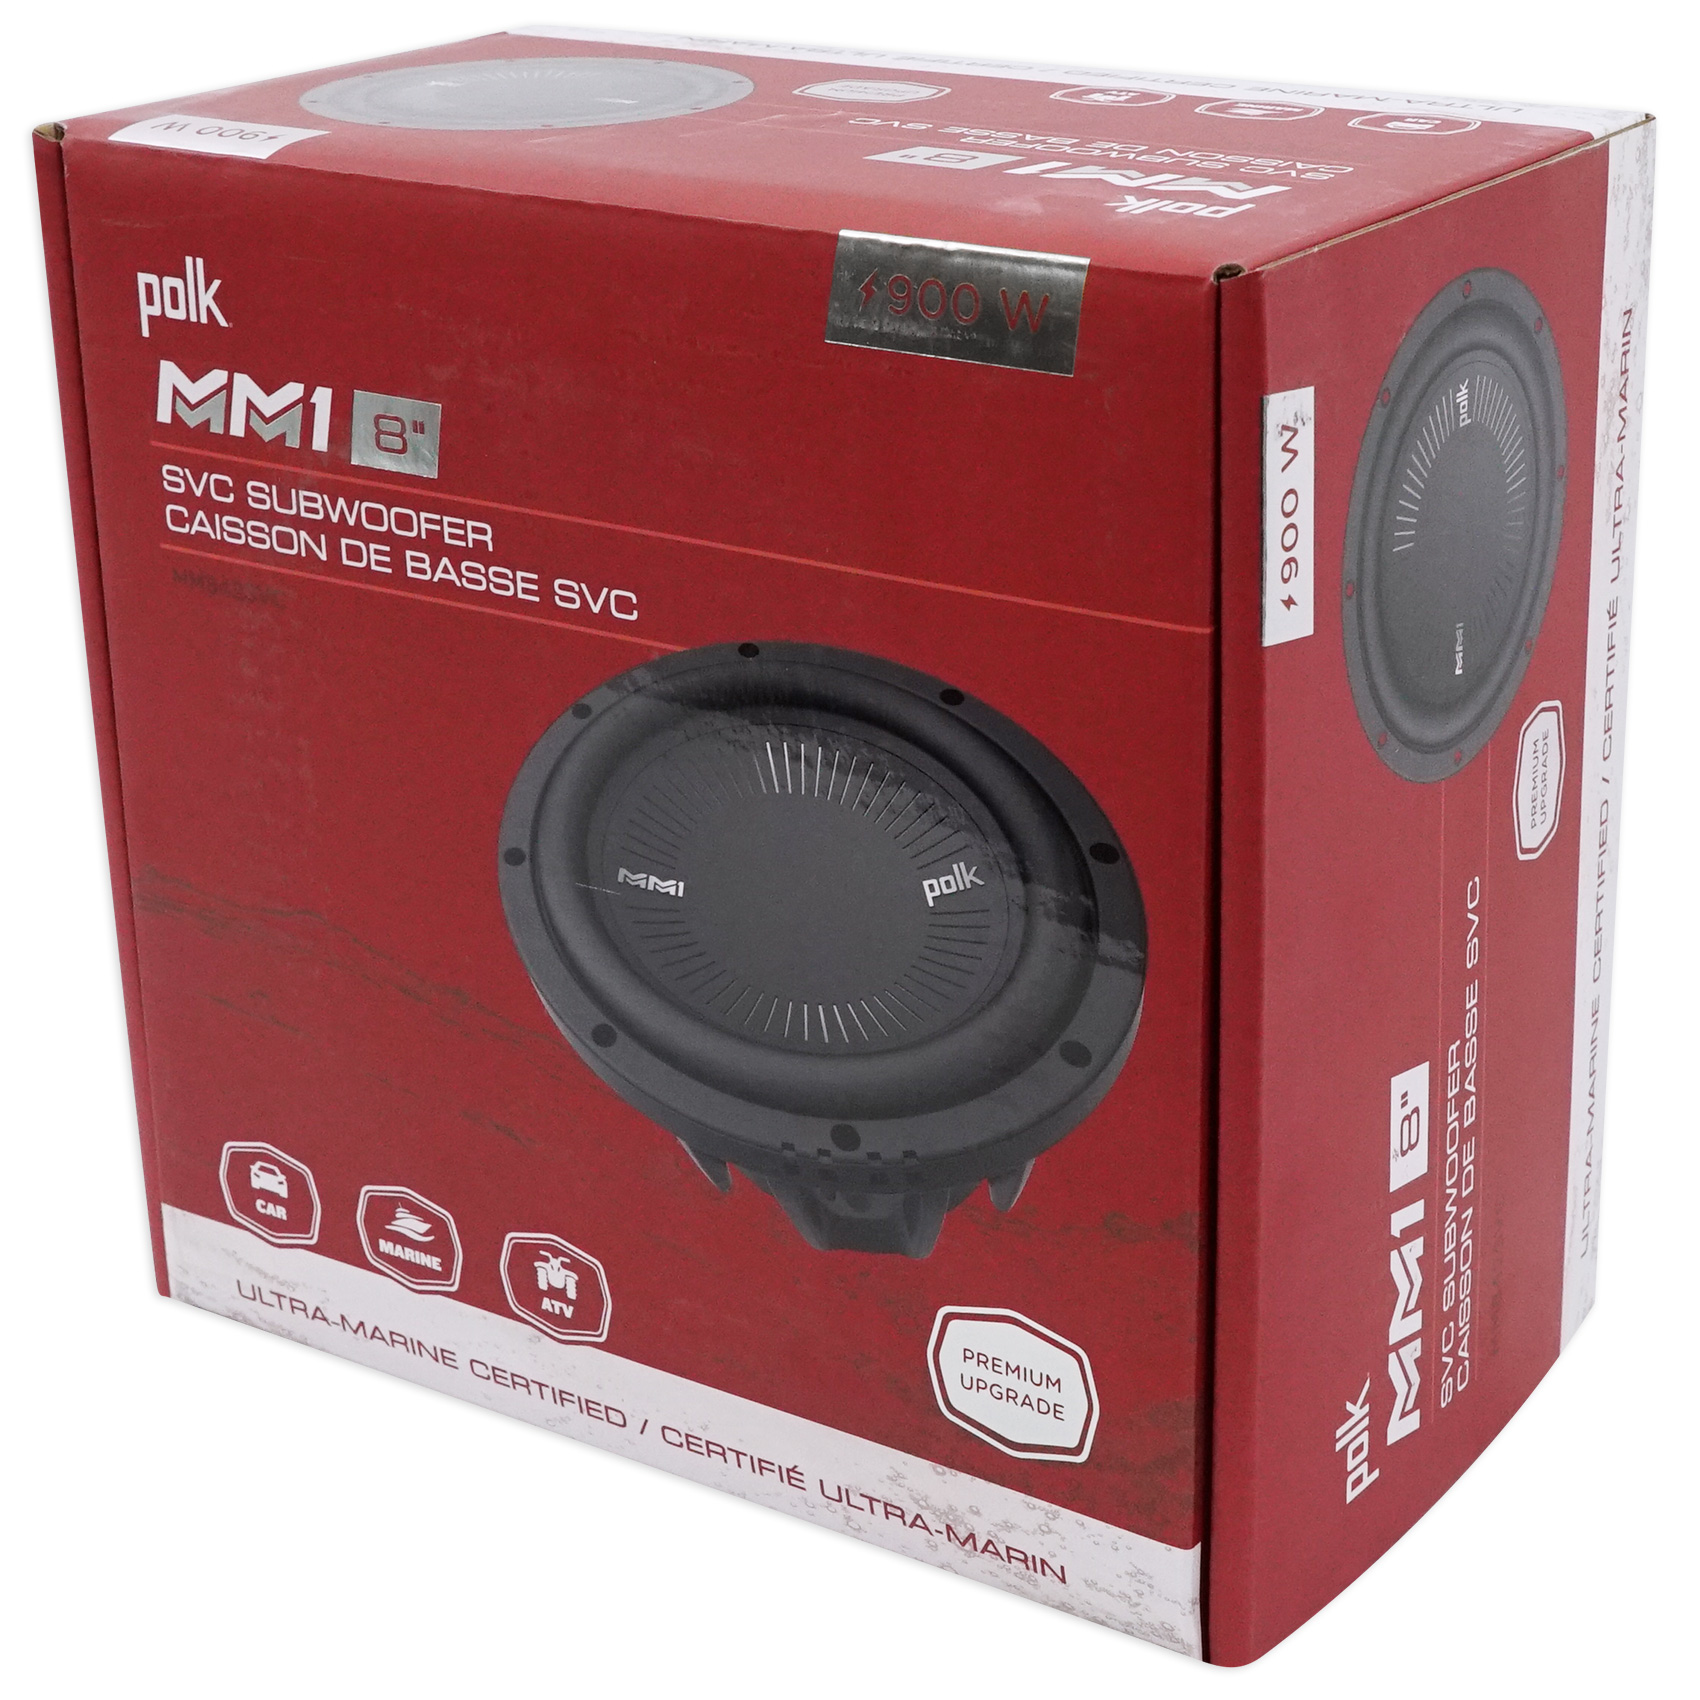 Polk Audio 8 DVC MM1-Series Subwoofer 900 W with Marine Certification